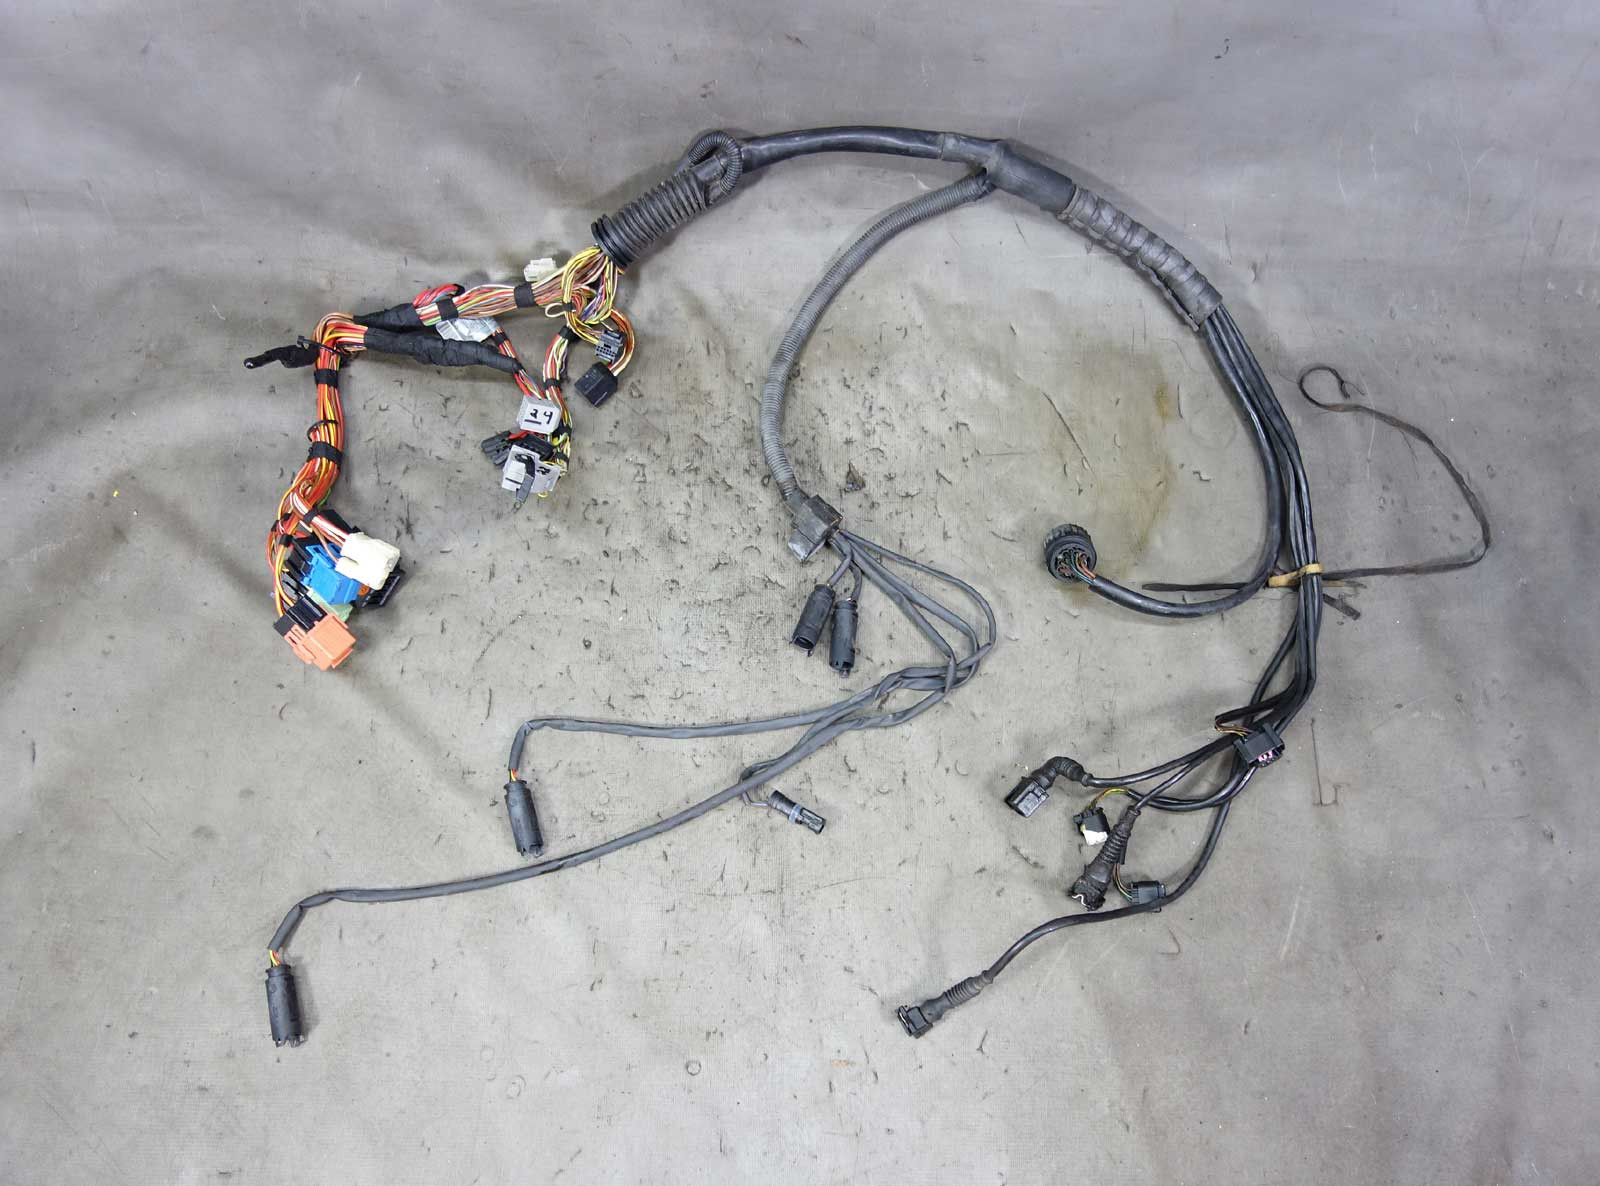 2004-2006 BMW E46 M3 SMG Sequential Transmission Module Wiring Harness w  Crack - 23516 - Prussian MotorsPrussian Motors